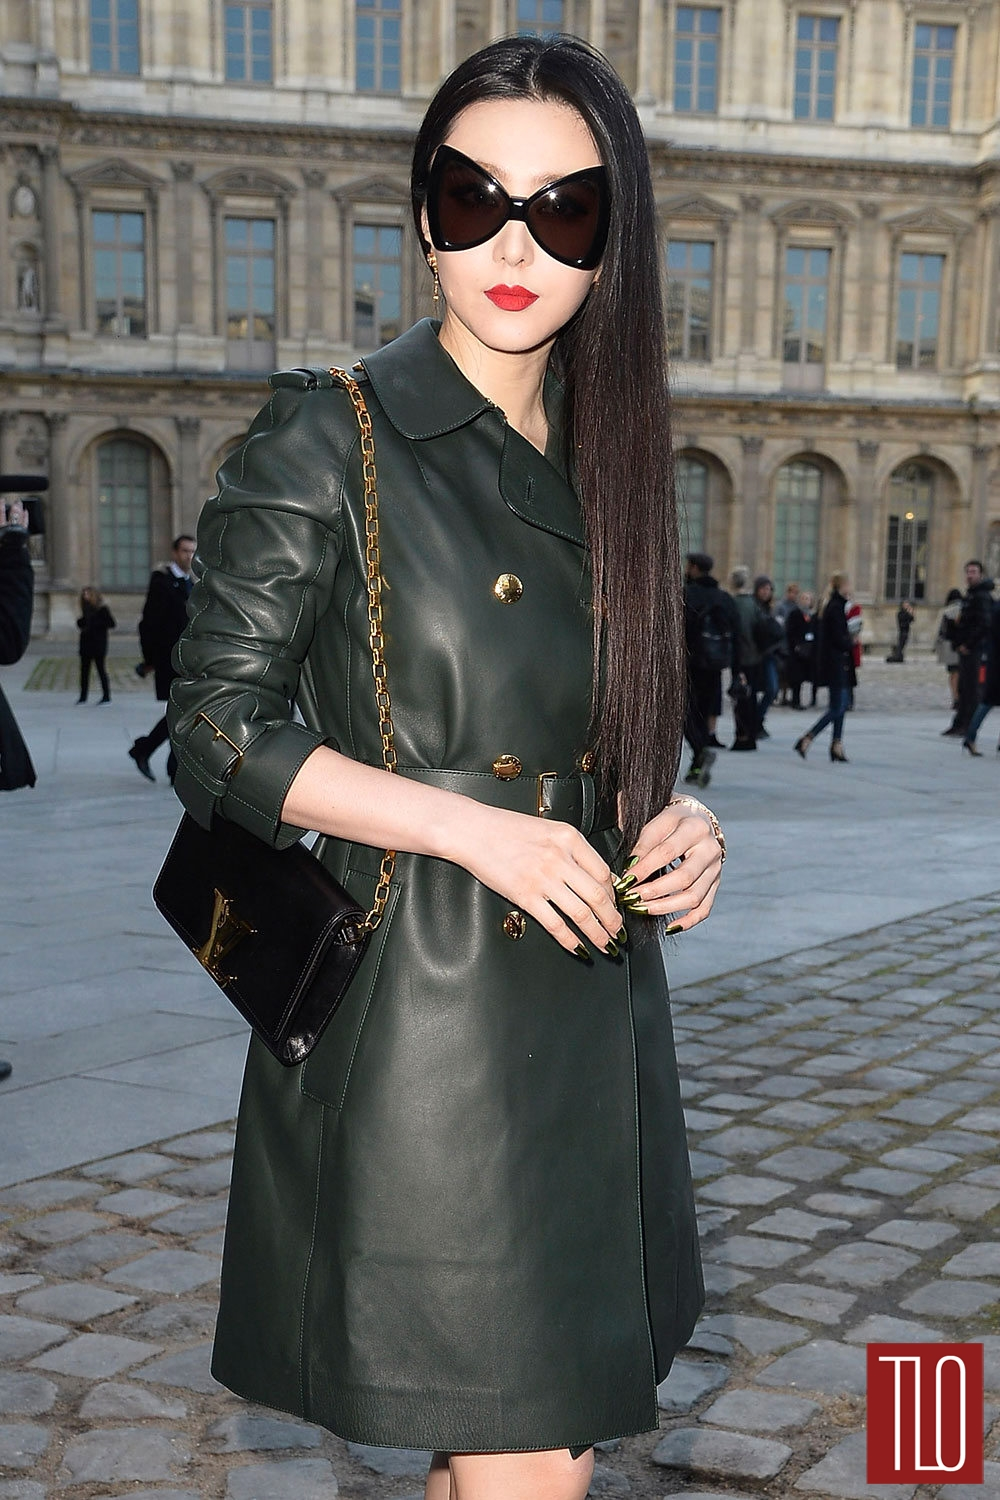 Fan-Bingbing-Louis-Vuitton-Fall-2014-Show-Tom-Lorenzo-Site-TLO (1)